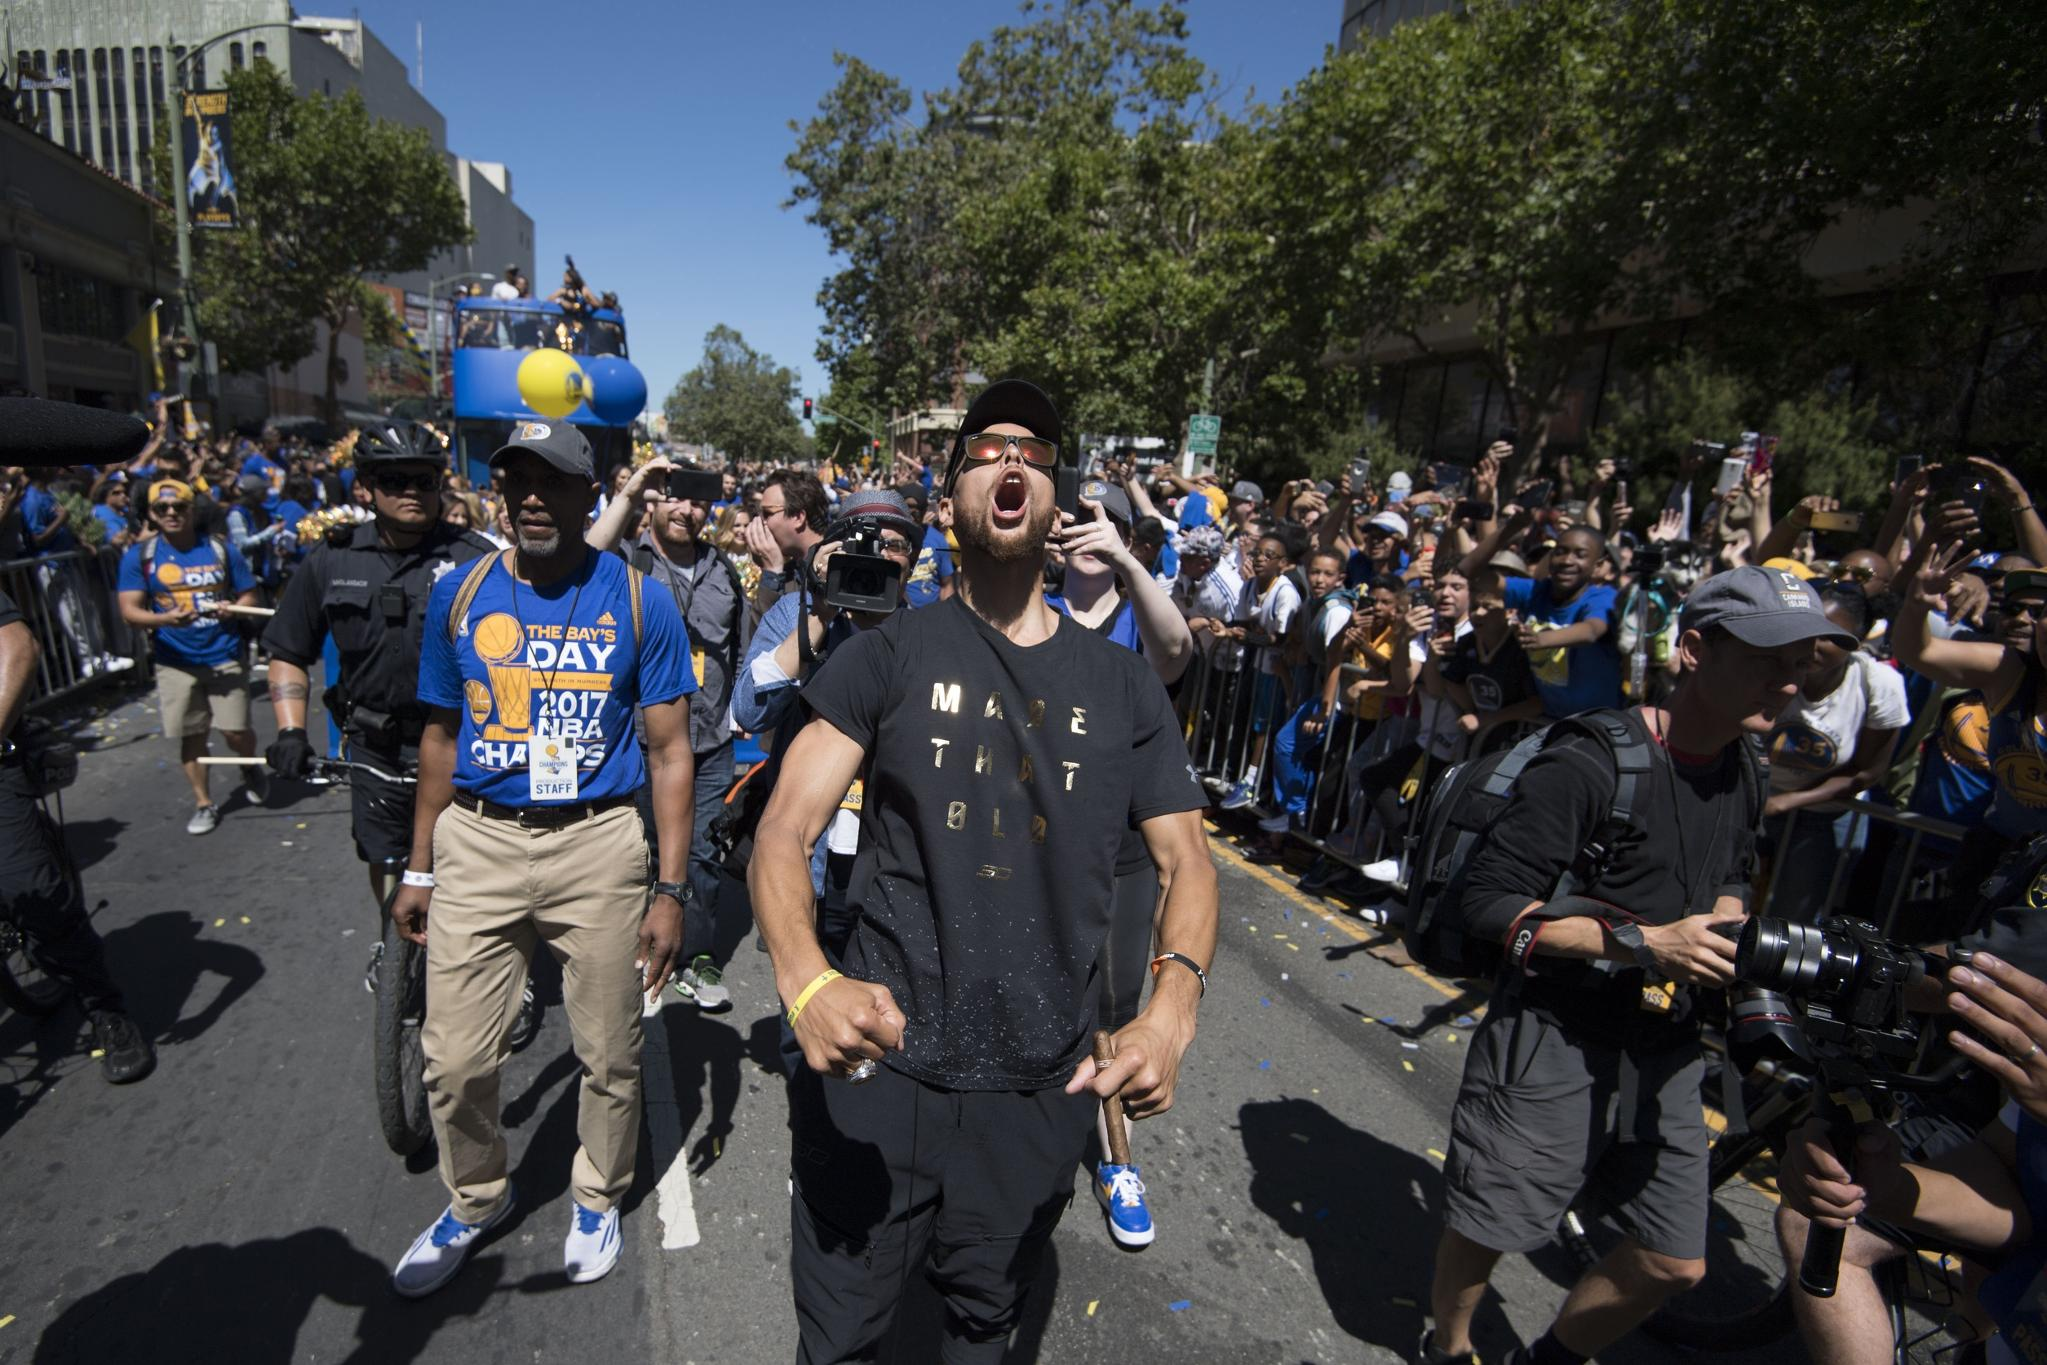 Relive all the best moments from @warriors championship parade ➡️ https://t.co/9TEINt7Pxi #DubNation #WarriorsParade https://t.co/sF85uSzGaB